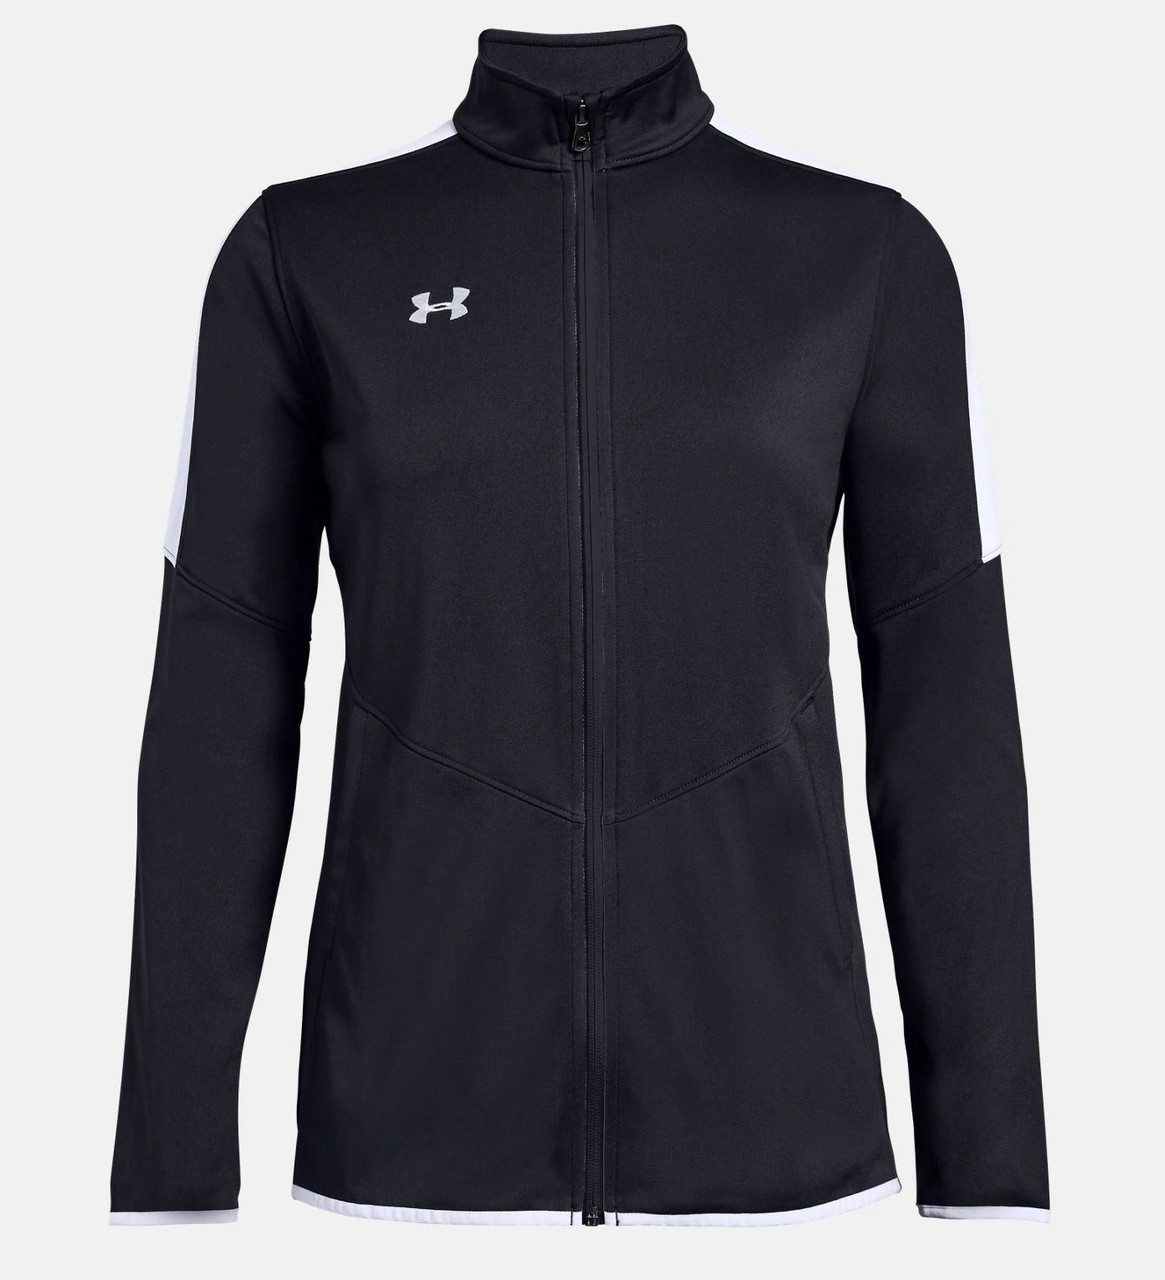 UA Women's Rival Knit Jacket- Black